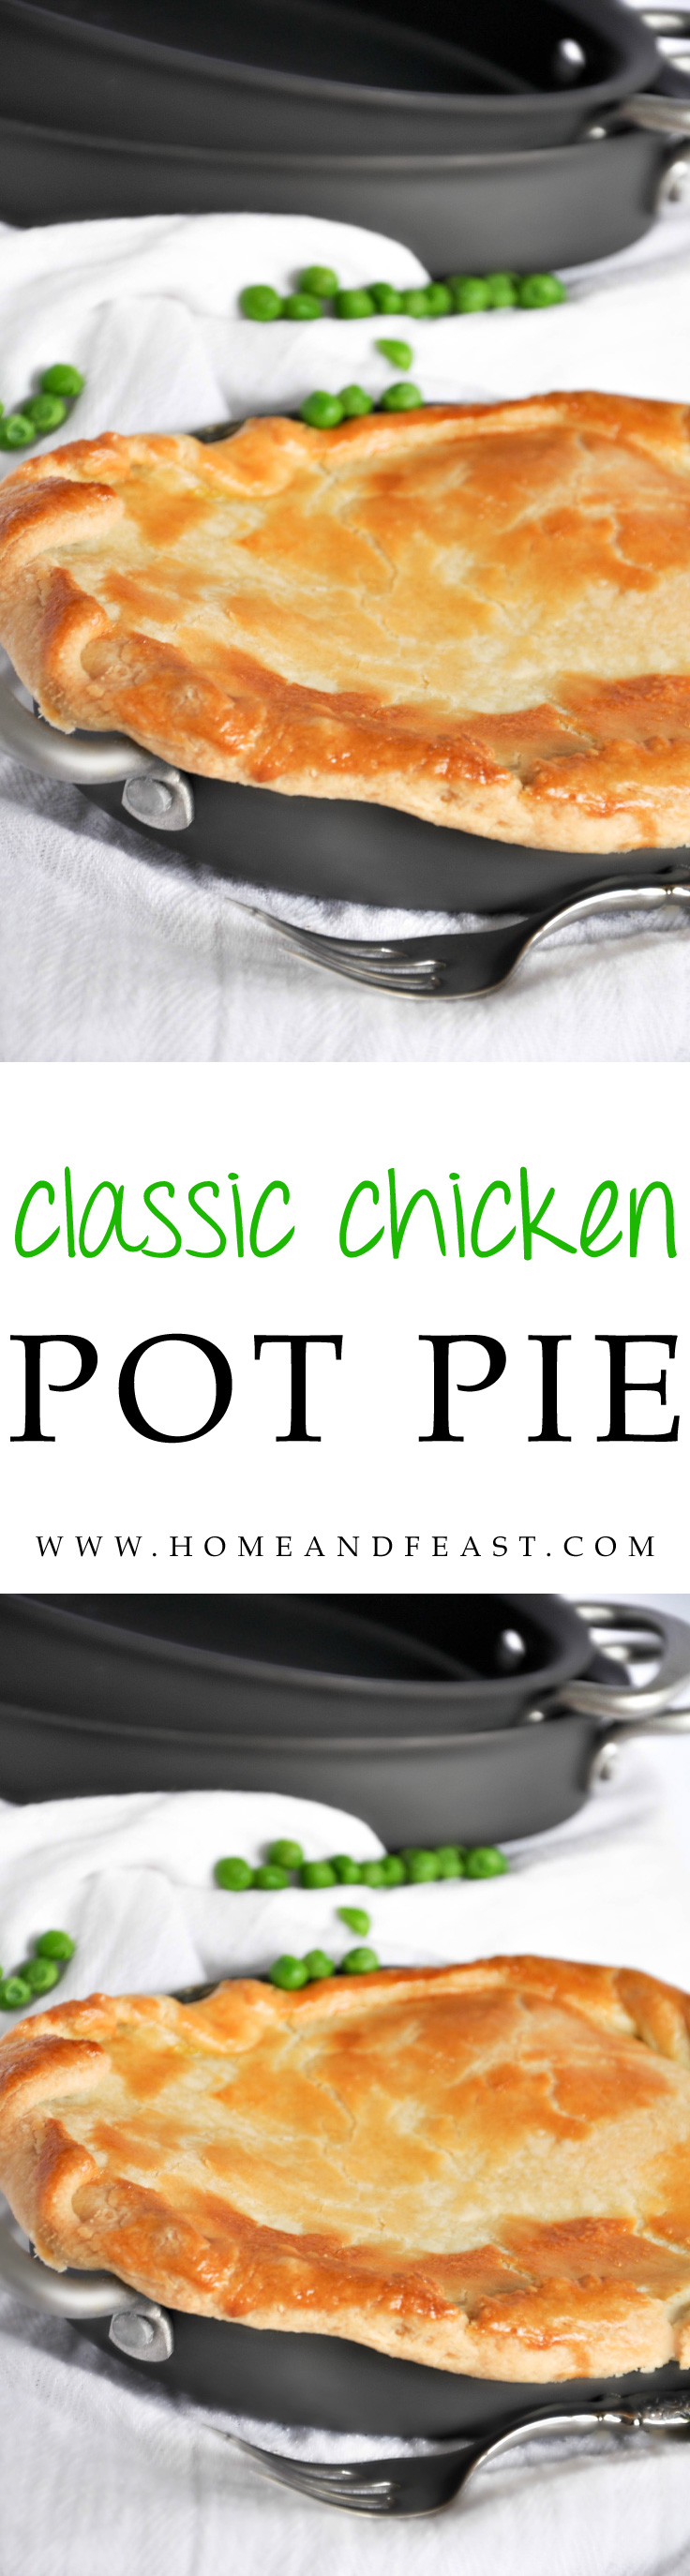 Classic Chicken Pot Pie by Home & Feast